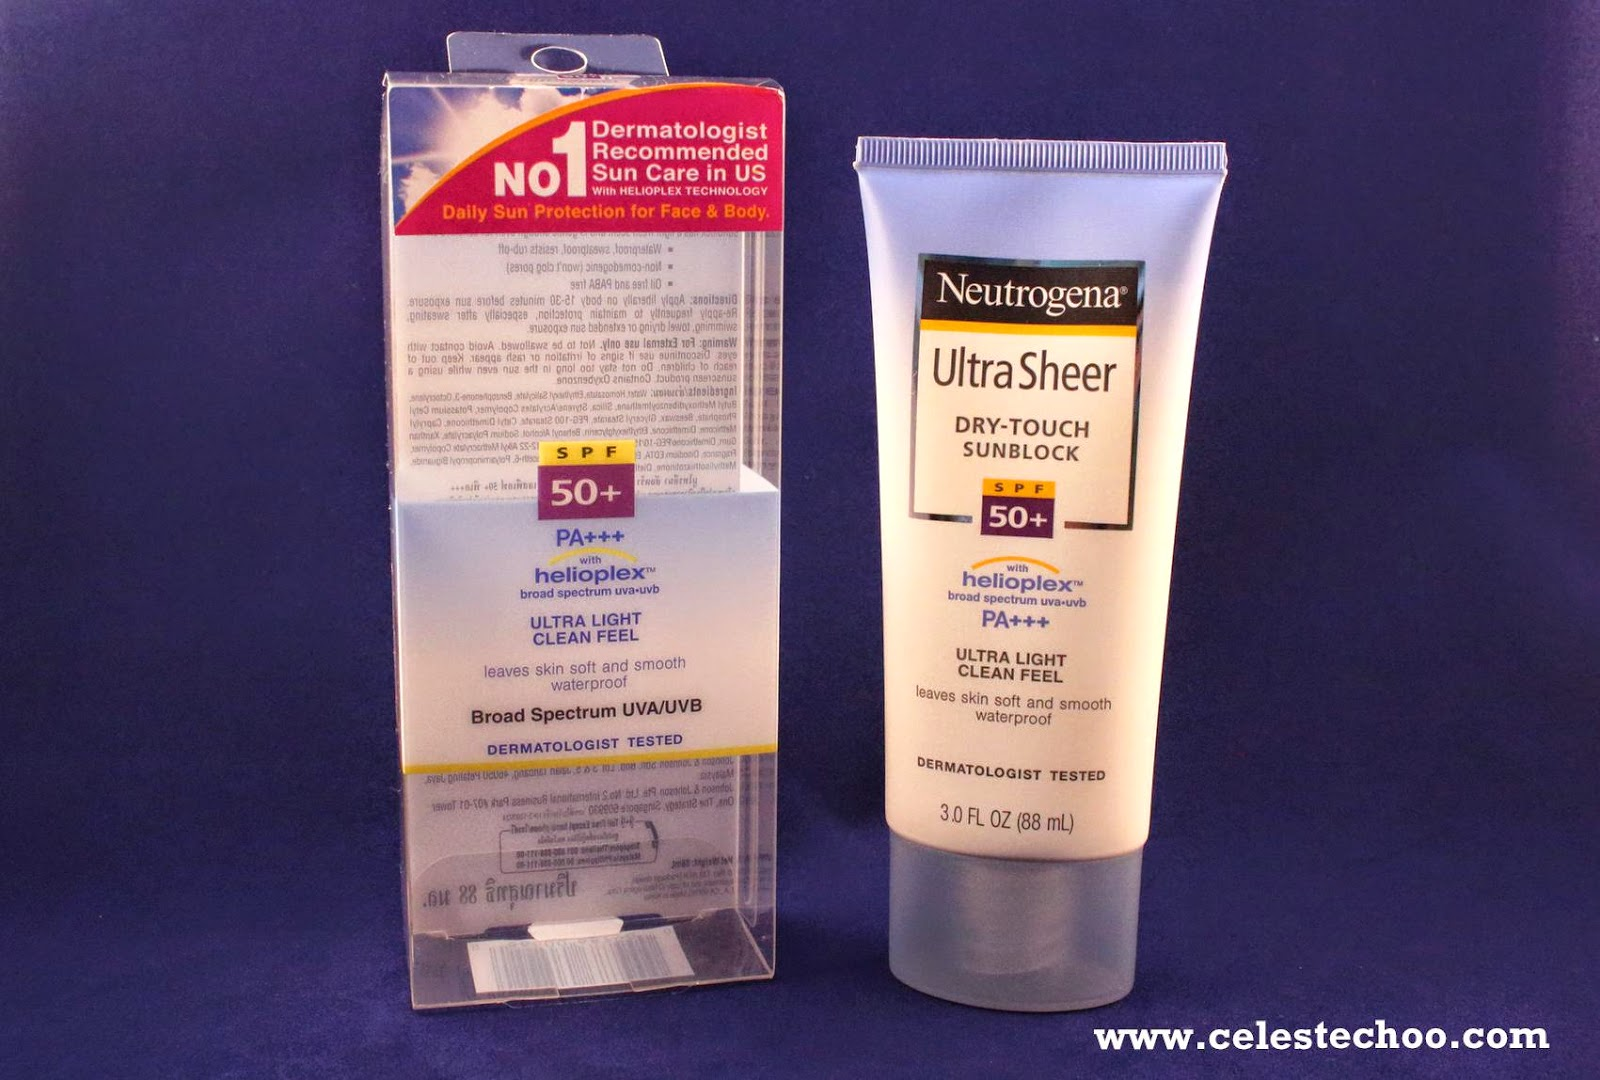 neutrogena-ultra-sheer-sunblock-dry-touch-for-beautiful-healthy-skin